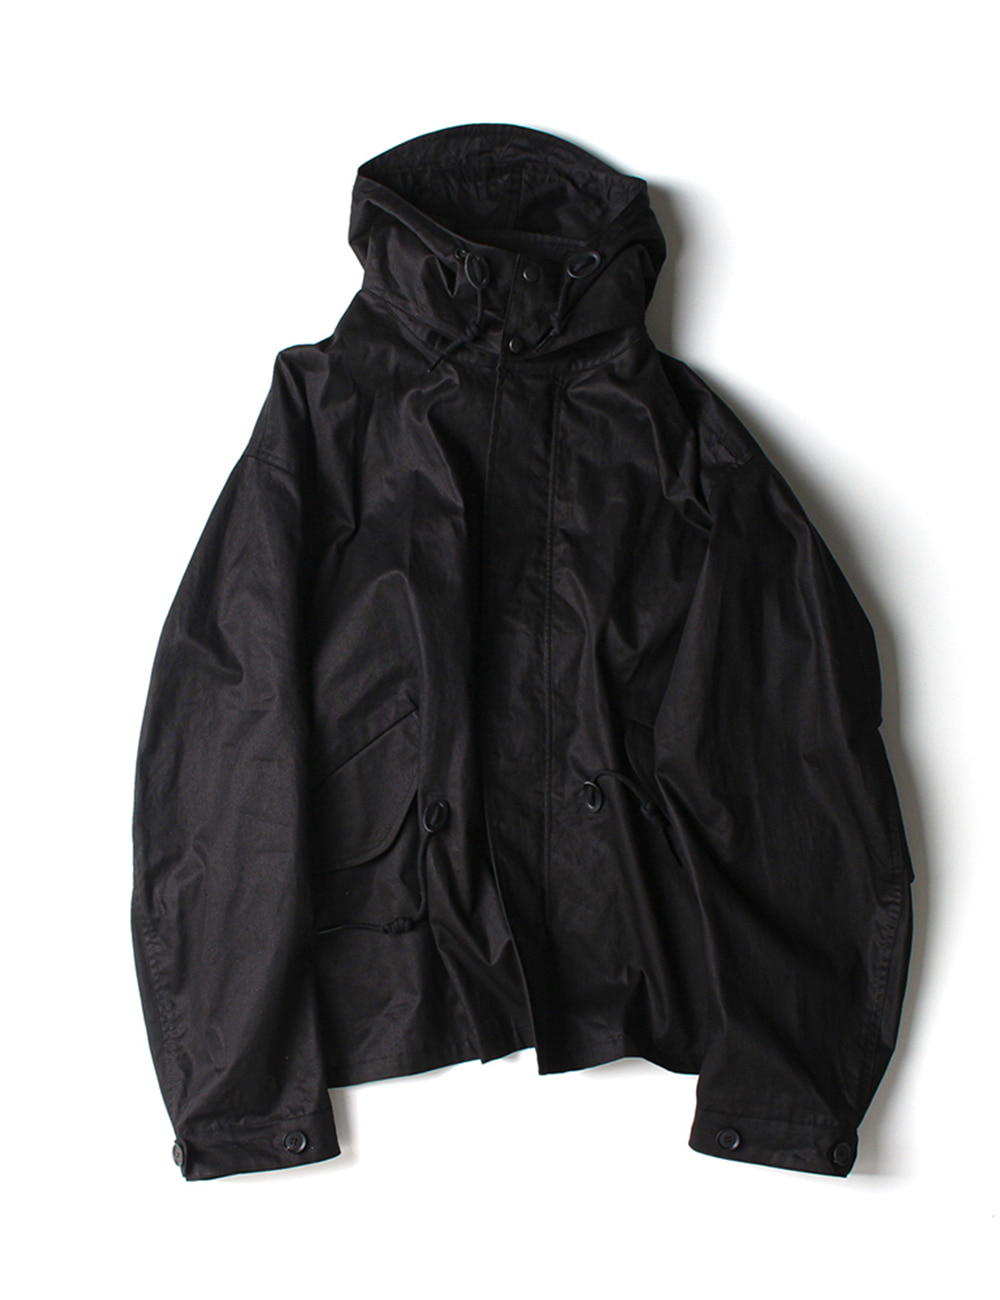 [Ourselves] M-65 FISHTAIL SHORT PARKA (Smoke black)